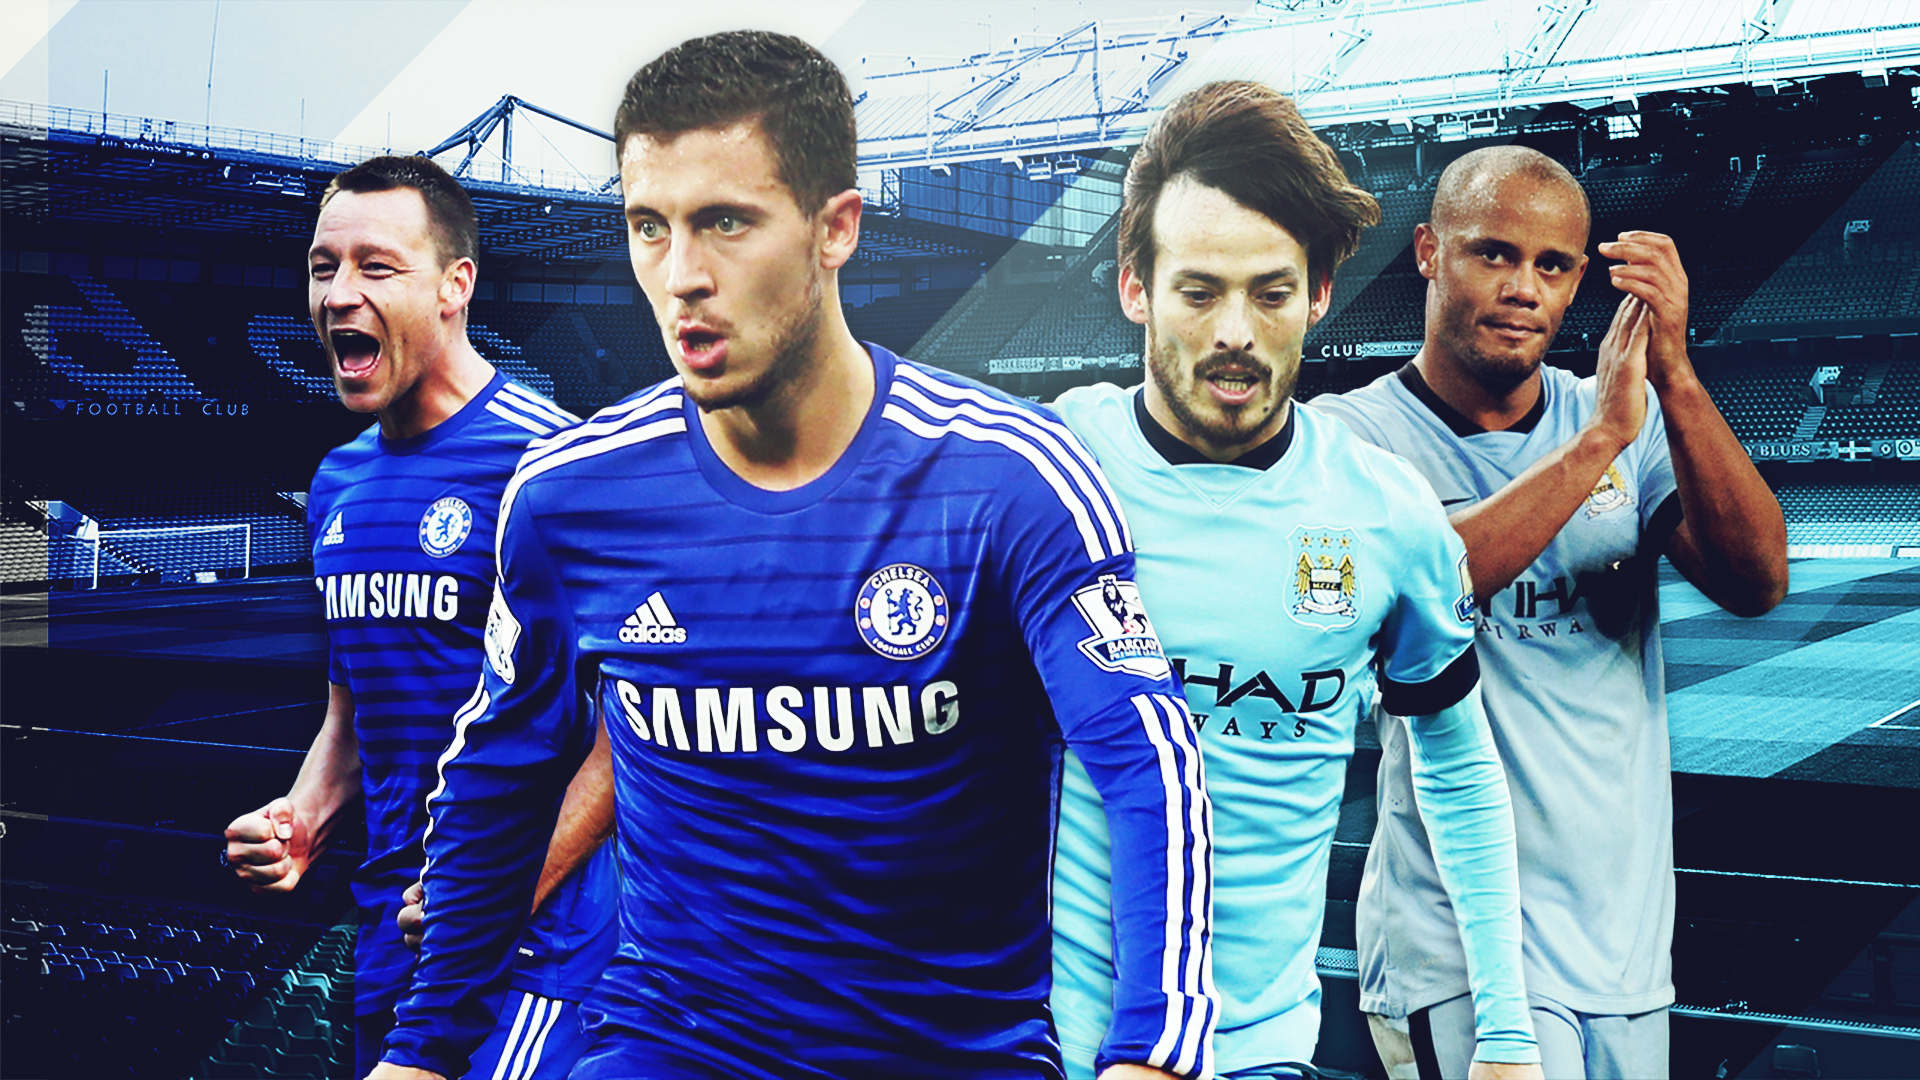 Chelsea Vs Man City: Manchester City Vs Chelsea Preview